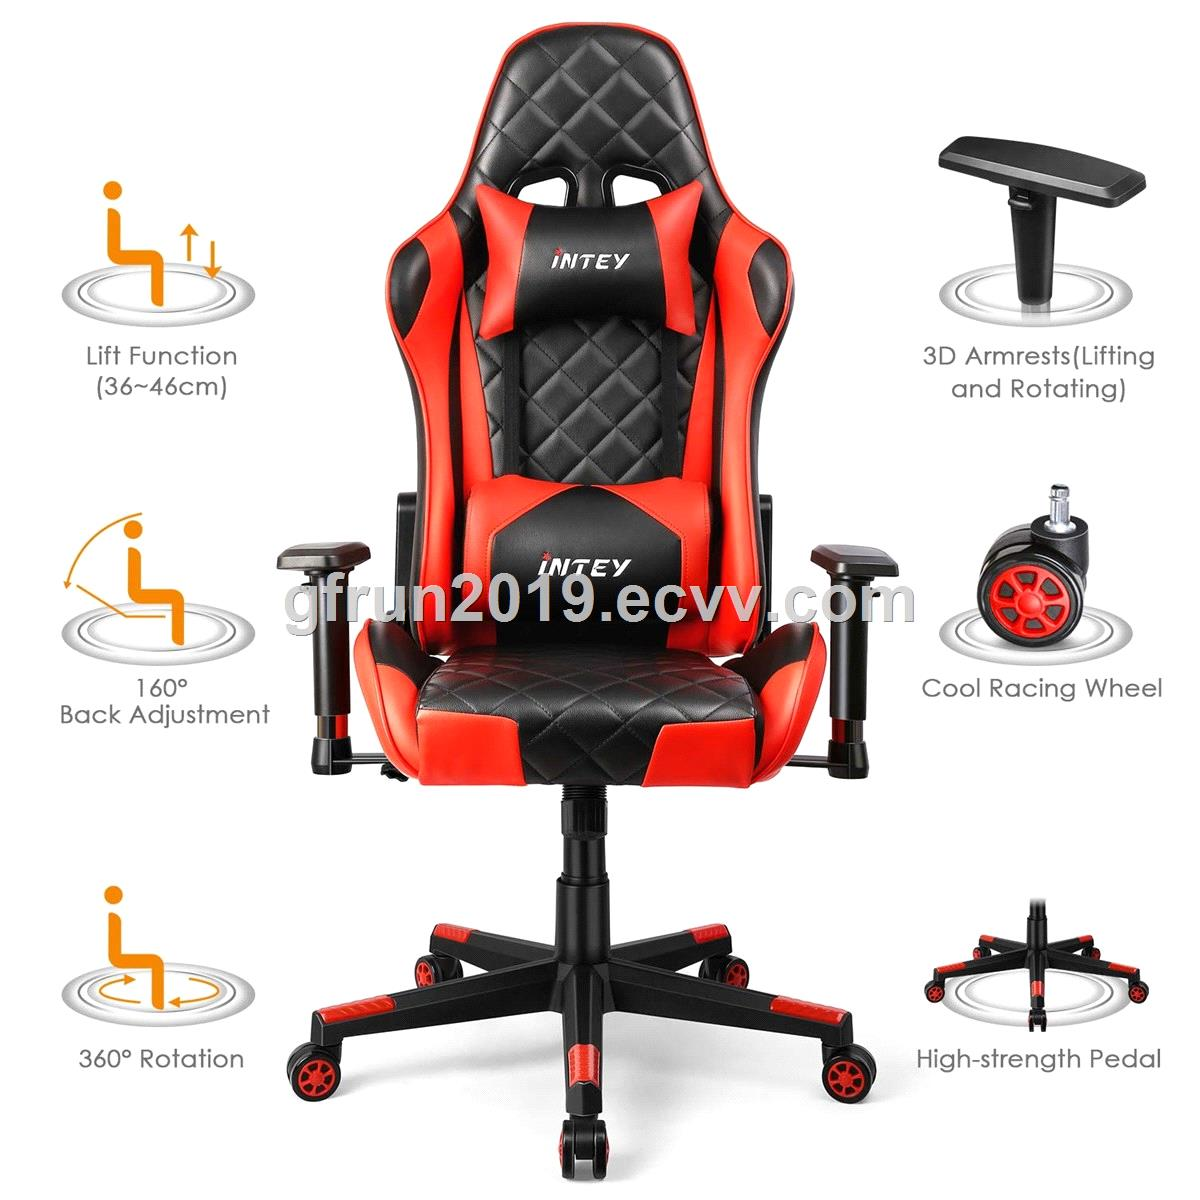 Gold Supplier Swivel Racing Sear Metal Frame OEM ODM Gaming Chair ewin With Wheels